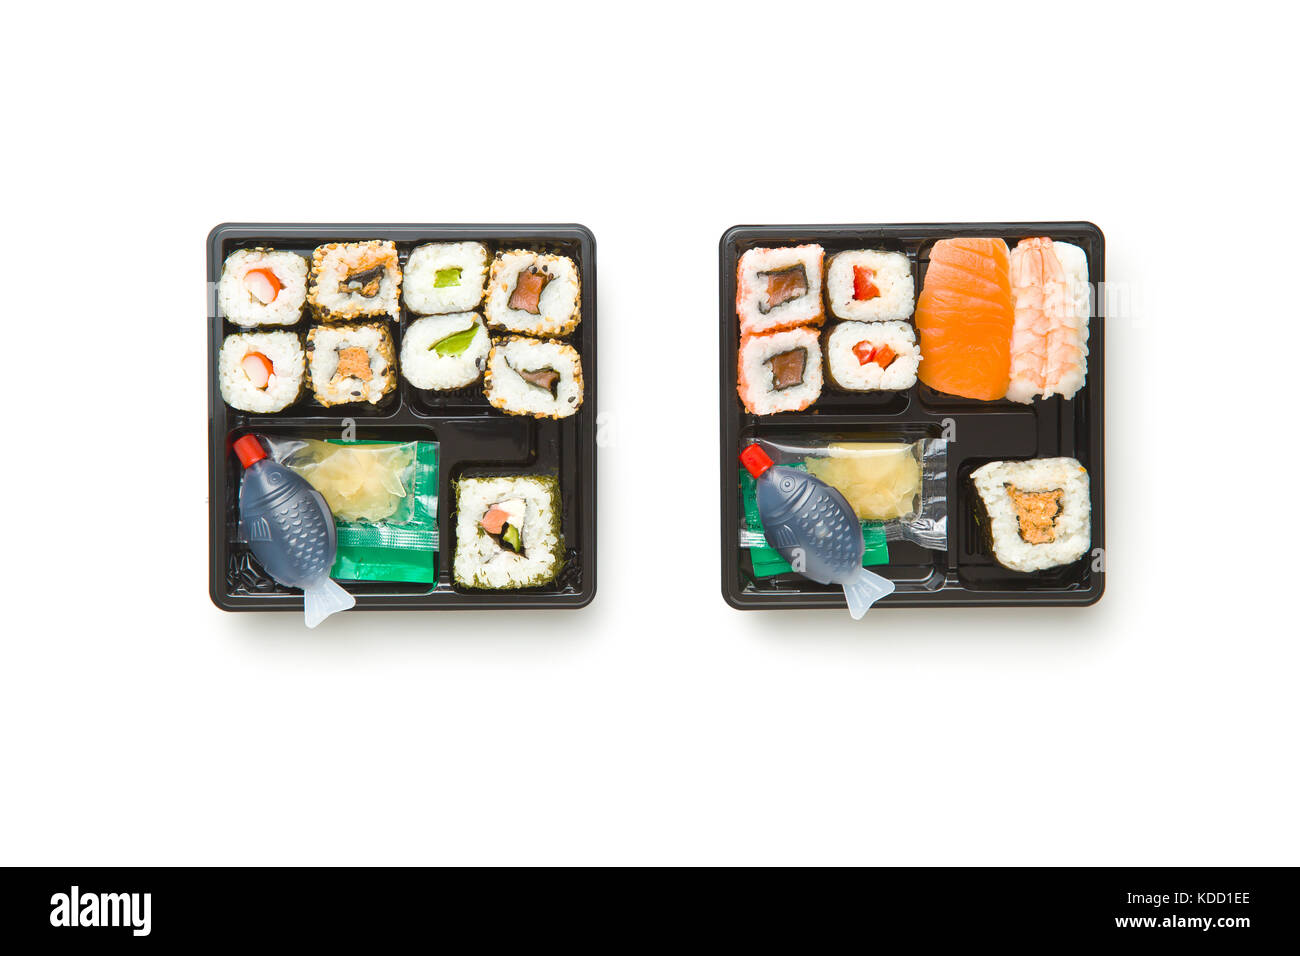 Eating set of sushi in box. Different types of sushi. Top view. - Stock Image